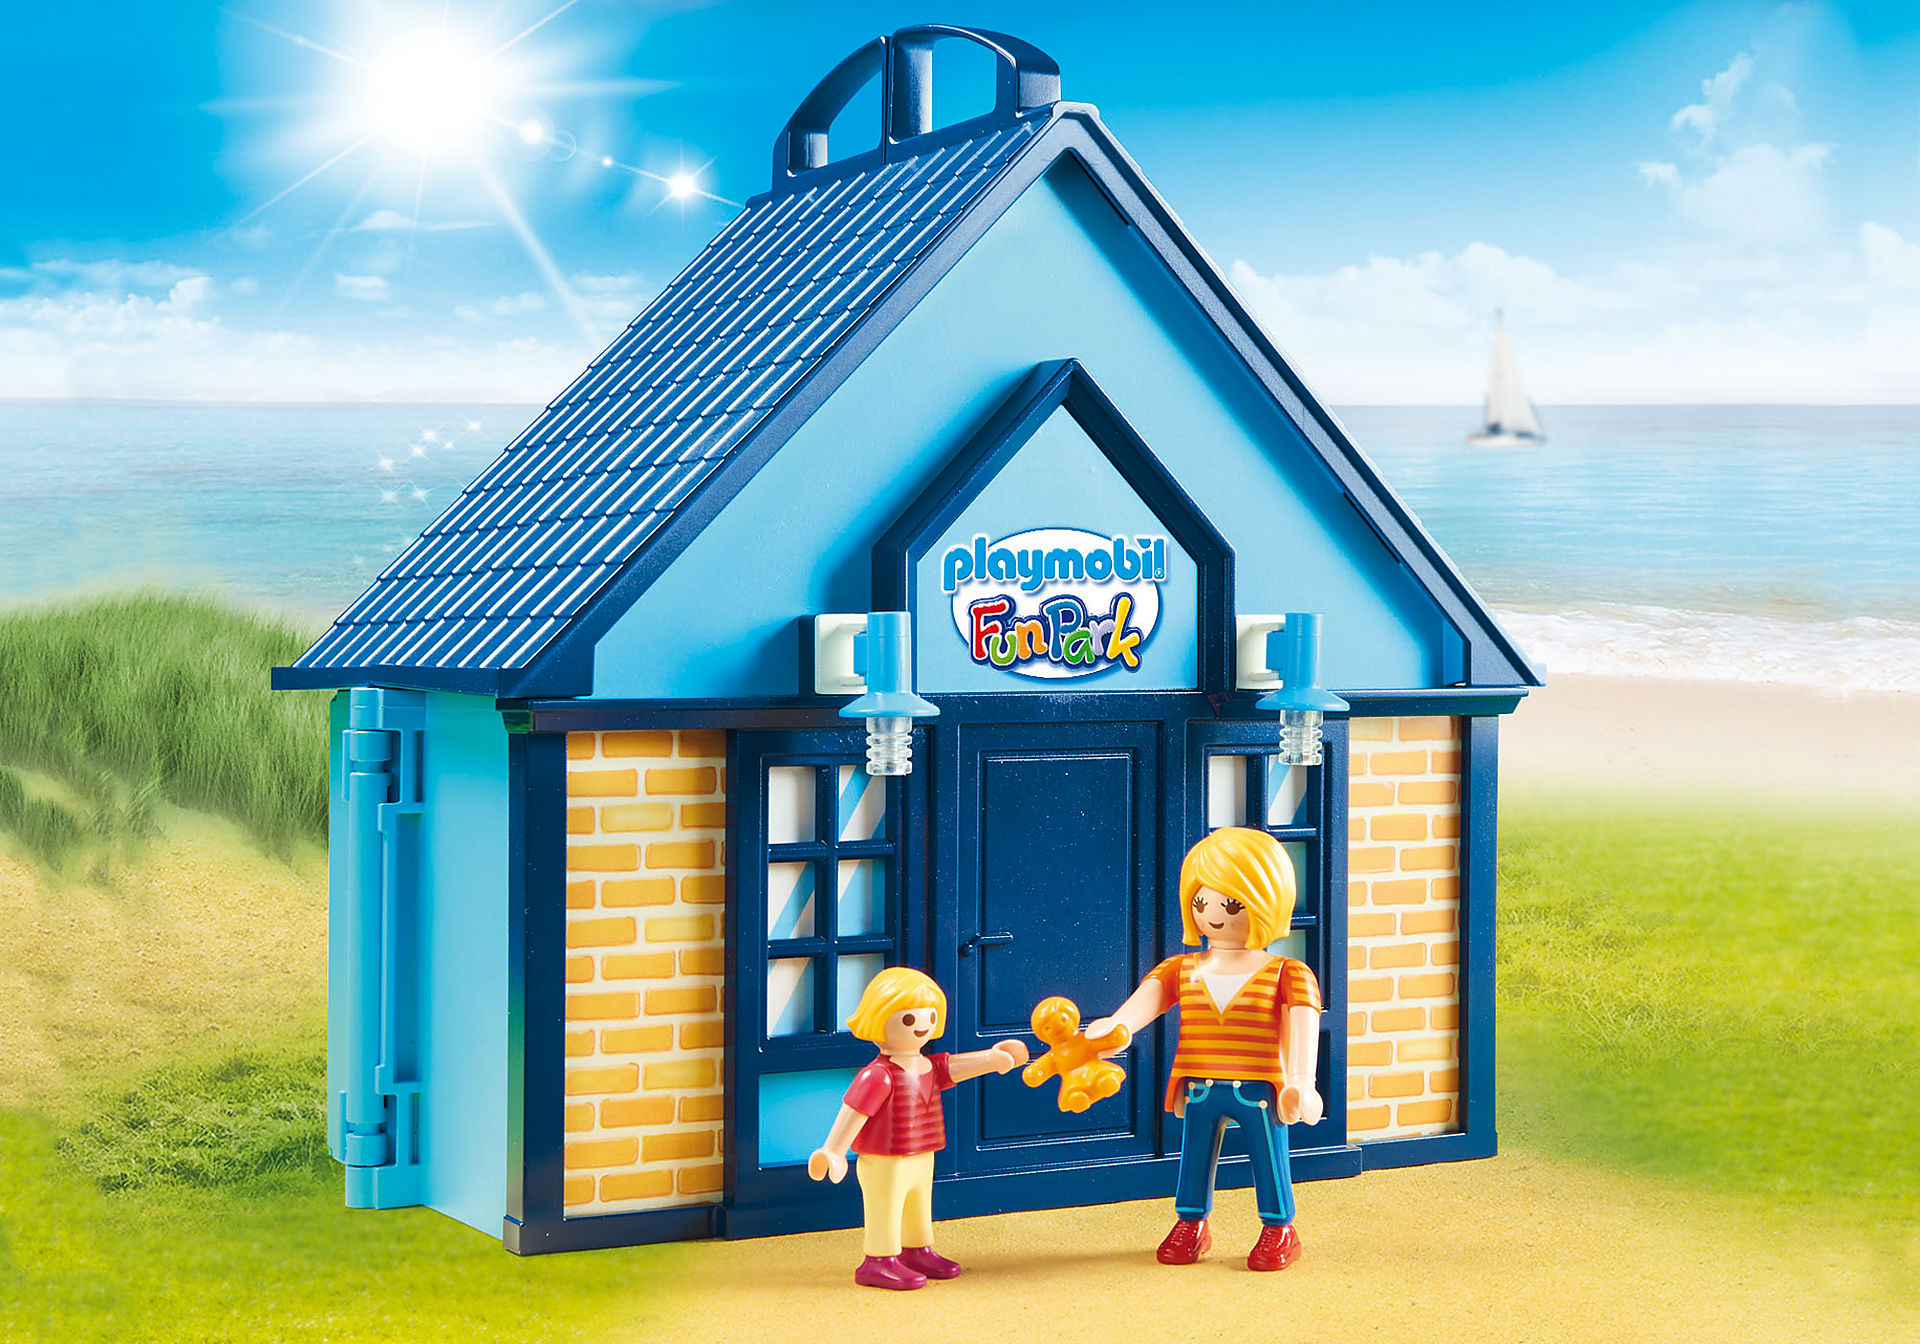 70219 PLAYMOBIL-FunPark Summerhouse Playbox zoom image4